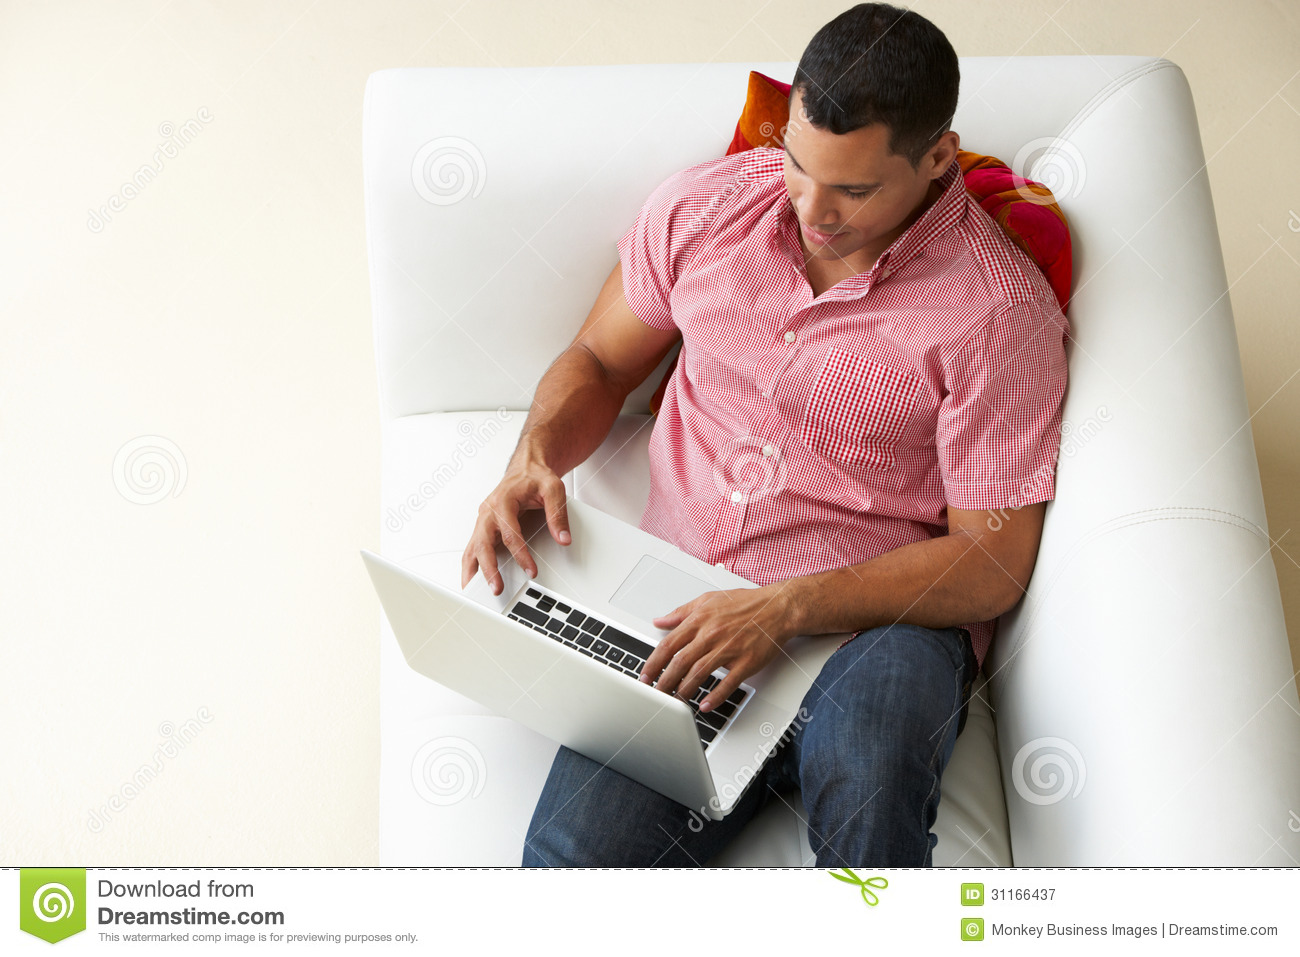 Overhead View Of Man Relaxing On Sofa Using Laptop Royalty